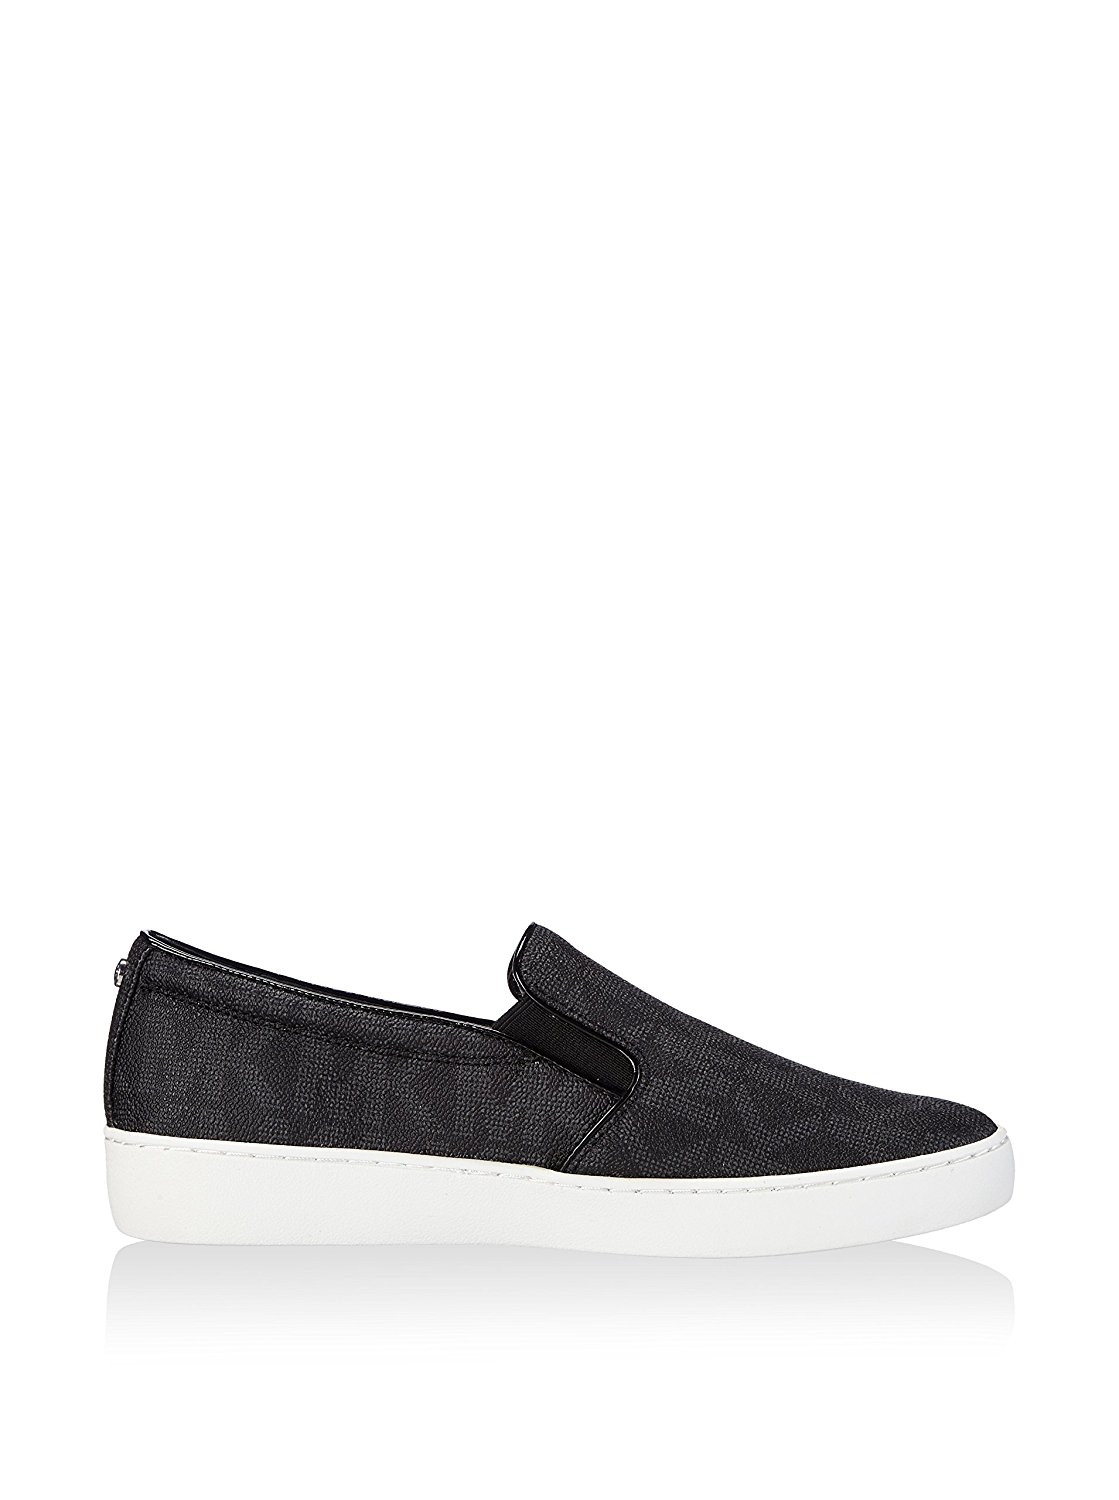 keaton black girls personals Nunn bush loafers at kohl's - shop our selection of men's shoes, including these nunn bush keaton loafers at kohl's black please select a size.